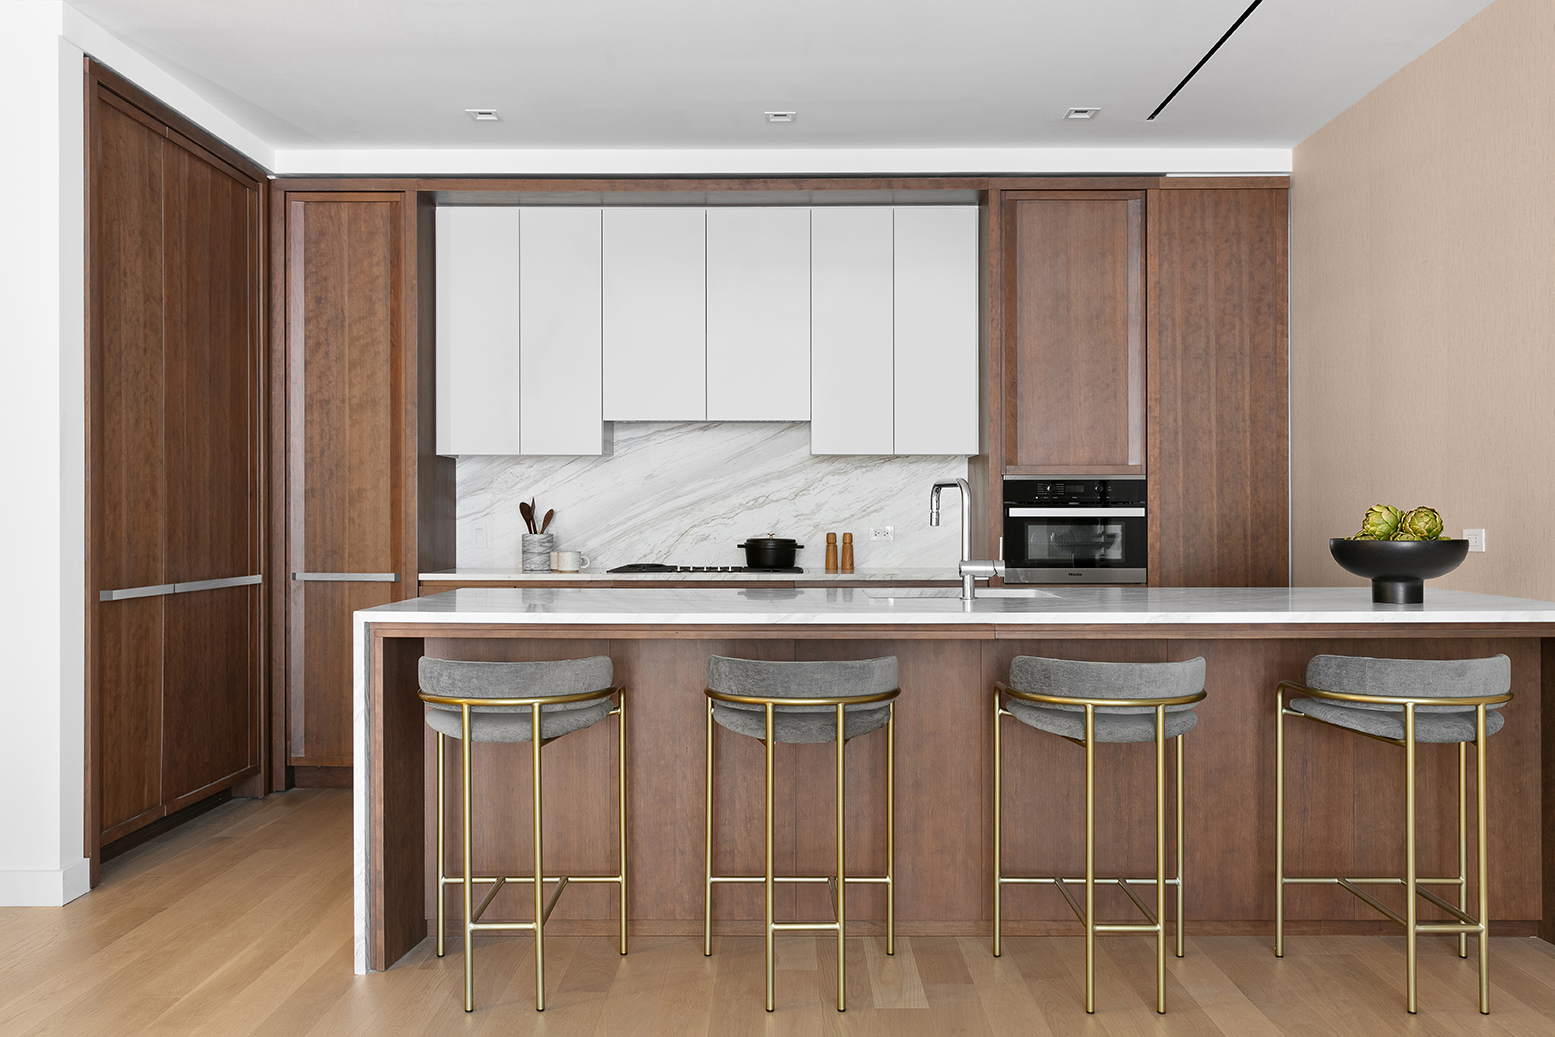 primary photo for 212 West 93rd Street 8-A, New York, NY 10025, US